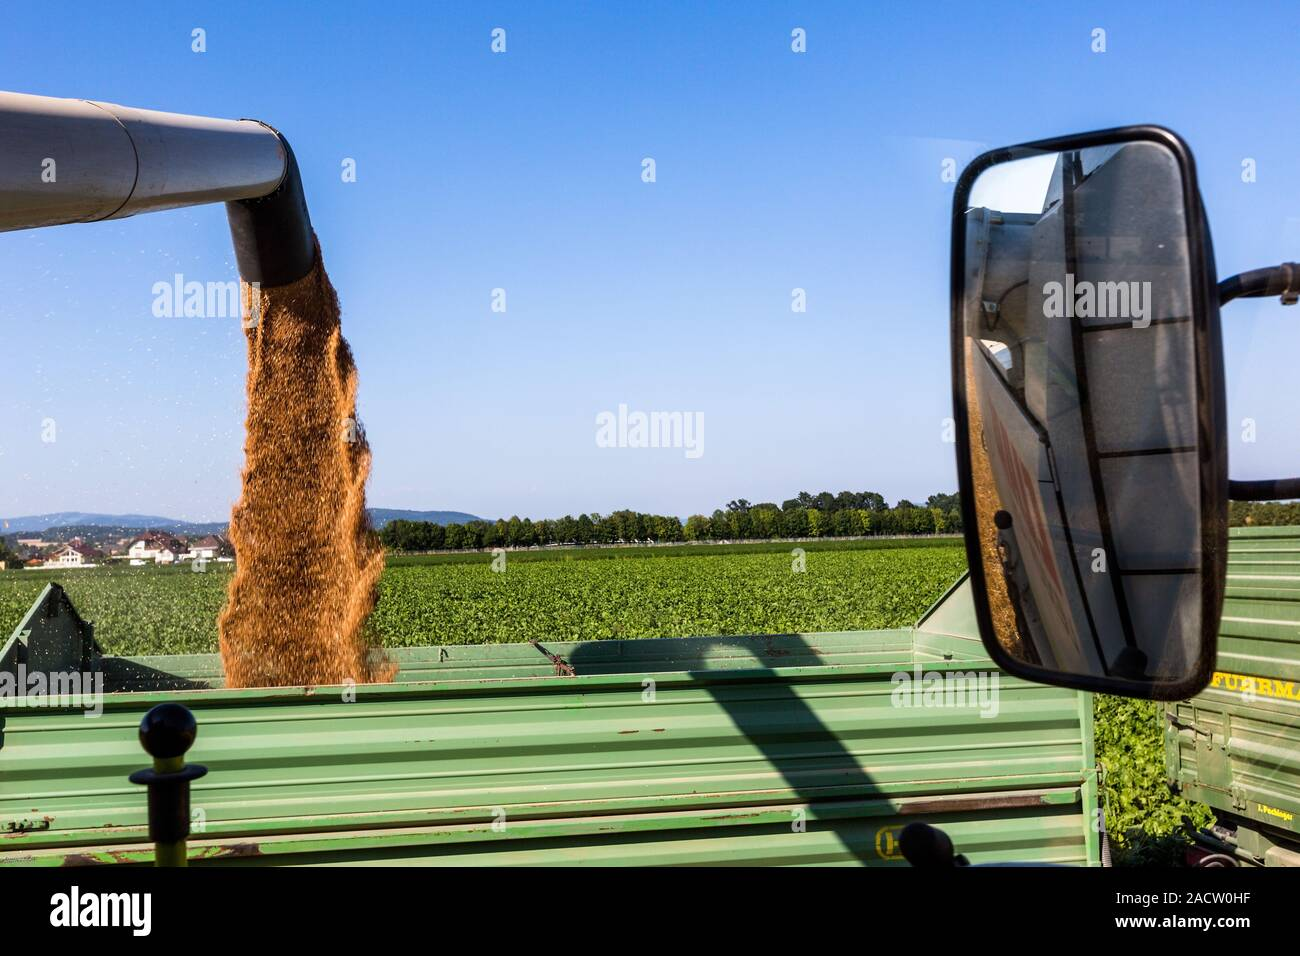 Grain field with wheat during harvesting Stock Photo